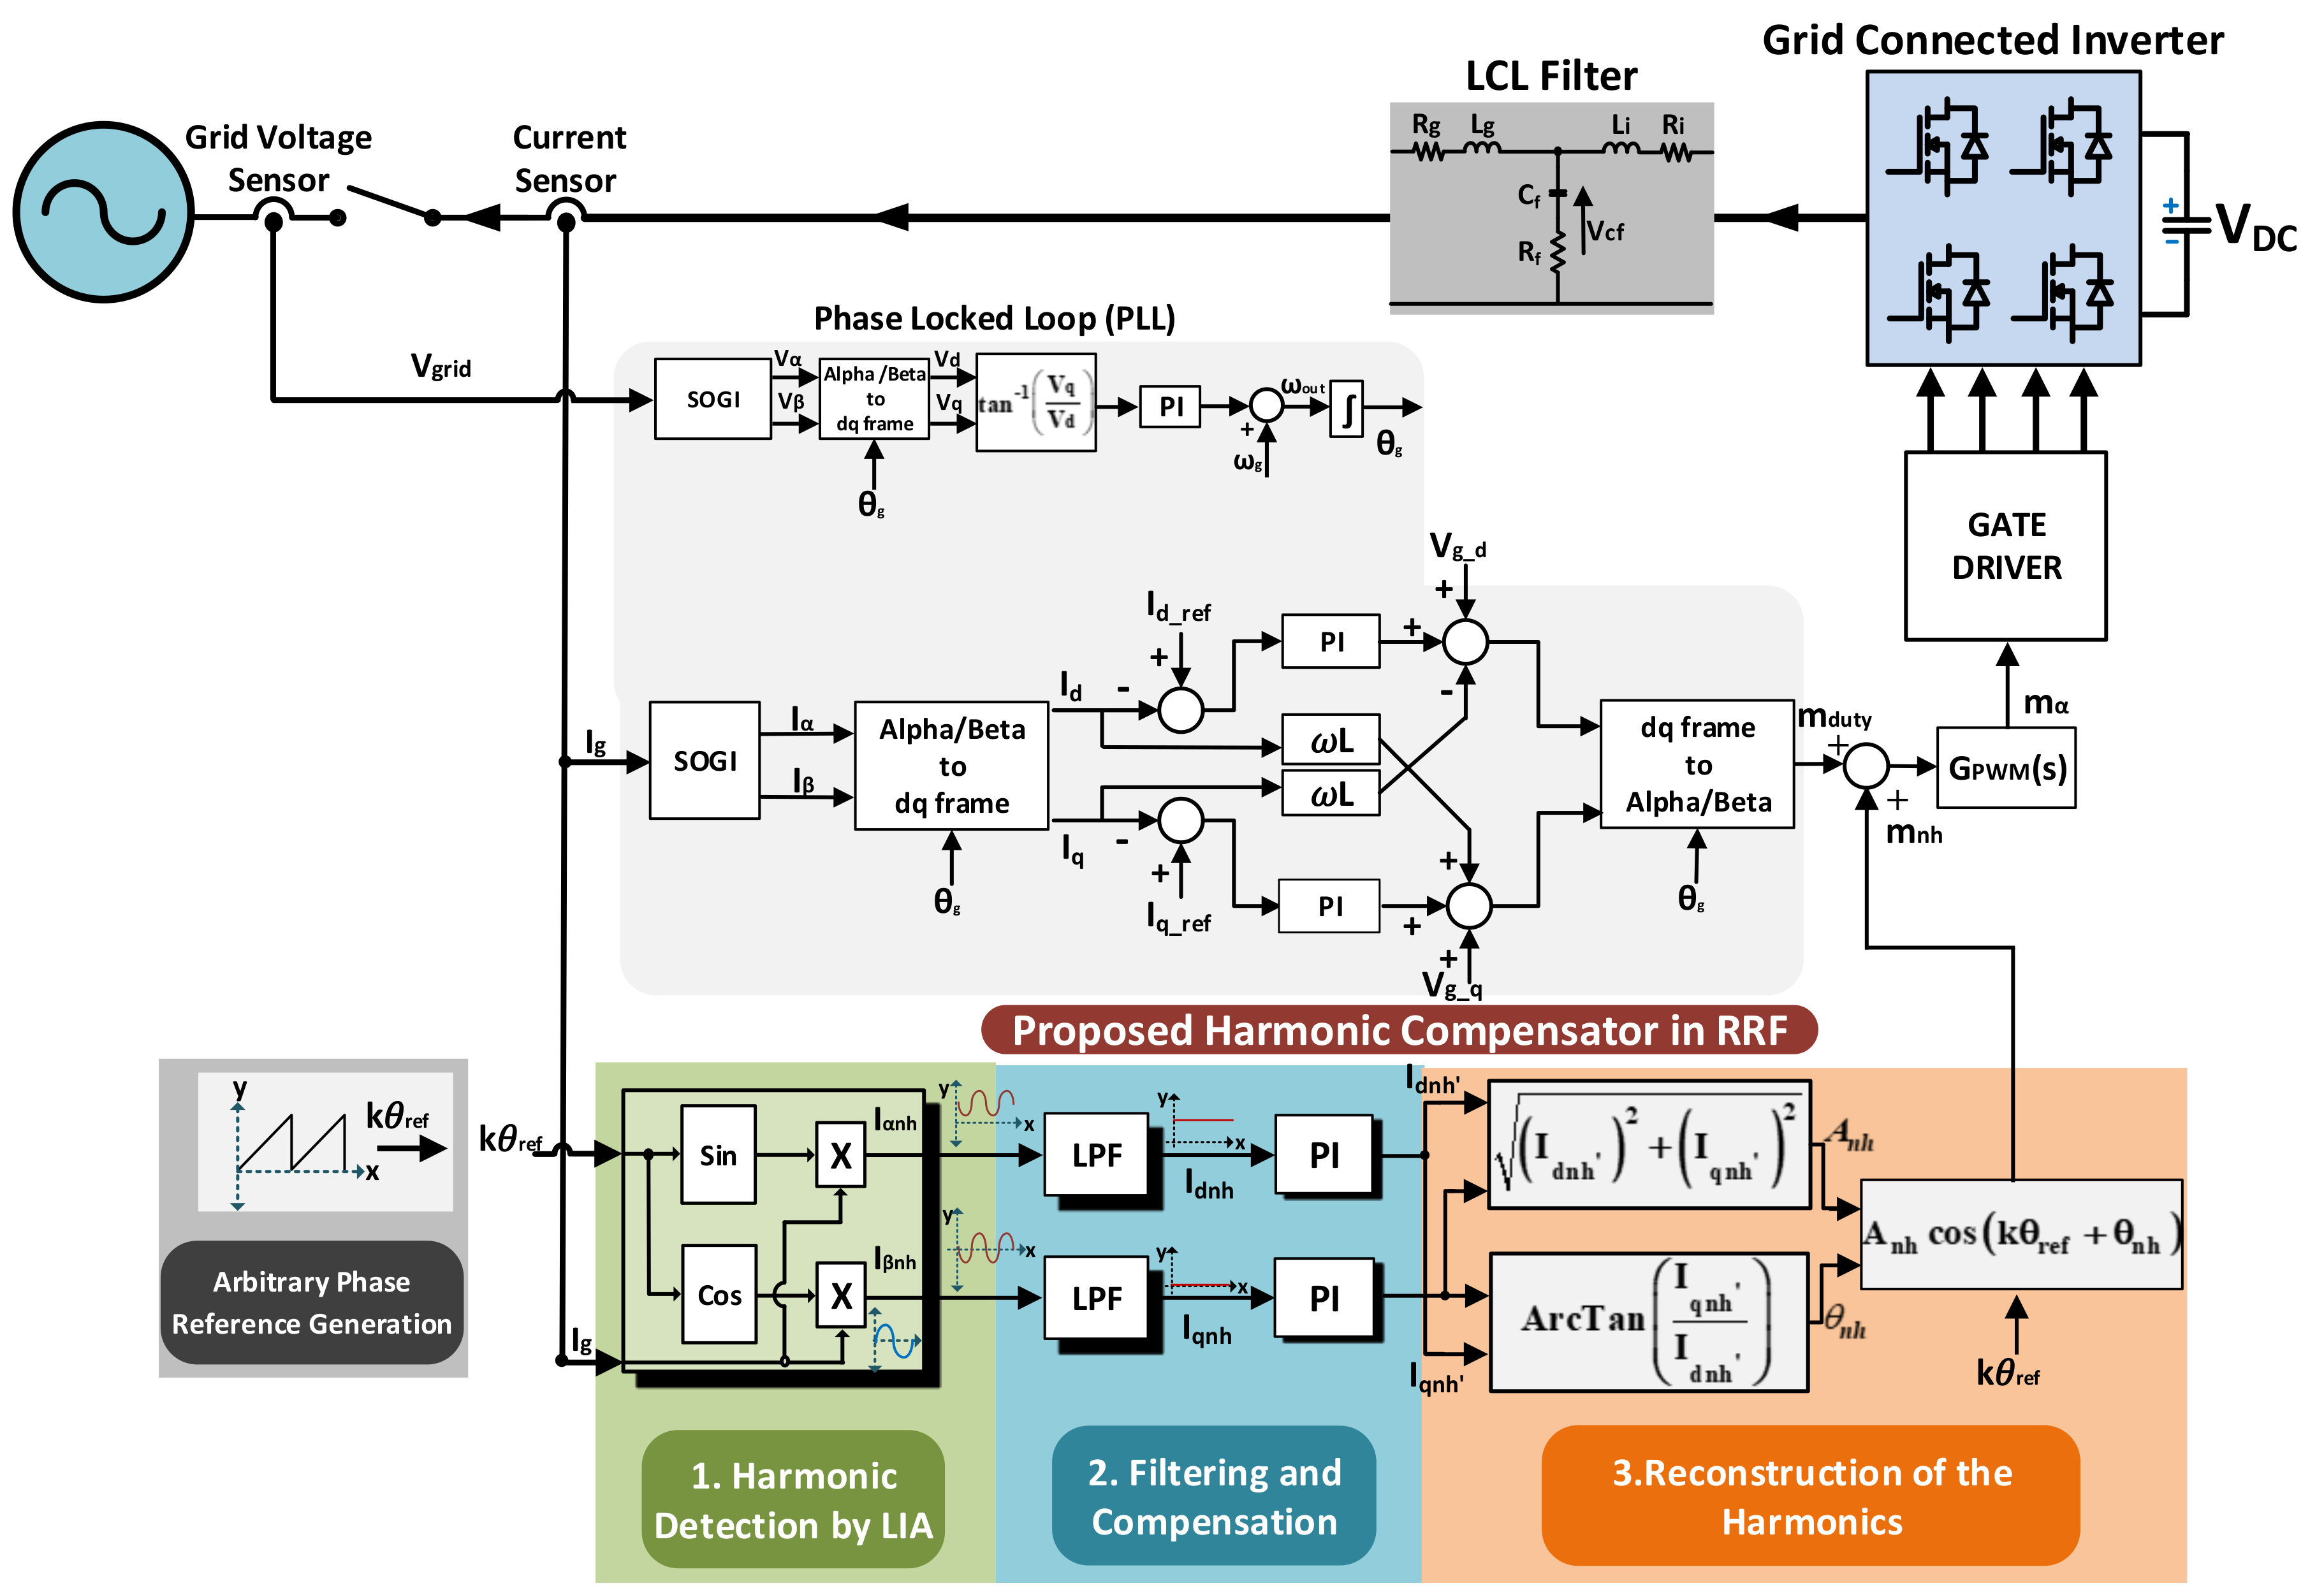 Energies Free Full Text A Harmonic Compensation Method Using A Lock In Amplifier Under Non Sinusoidal Grid Conditions For Single Phase Grid Connected Inverters Html